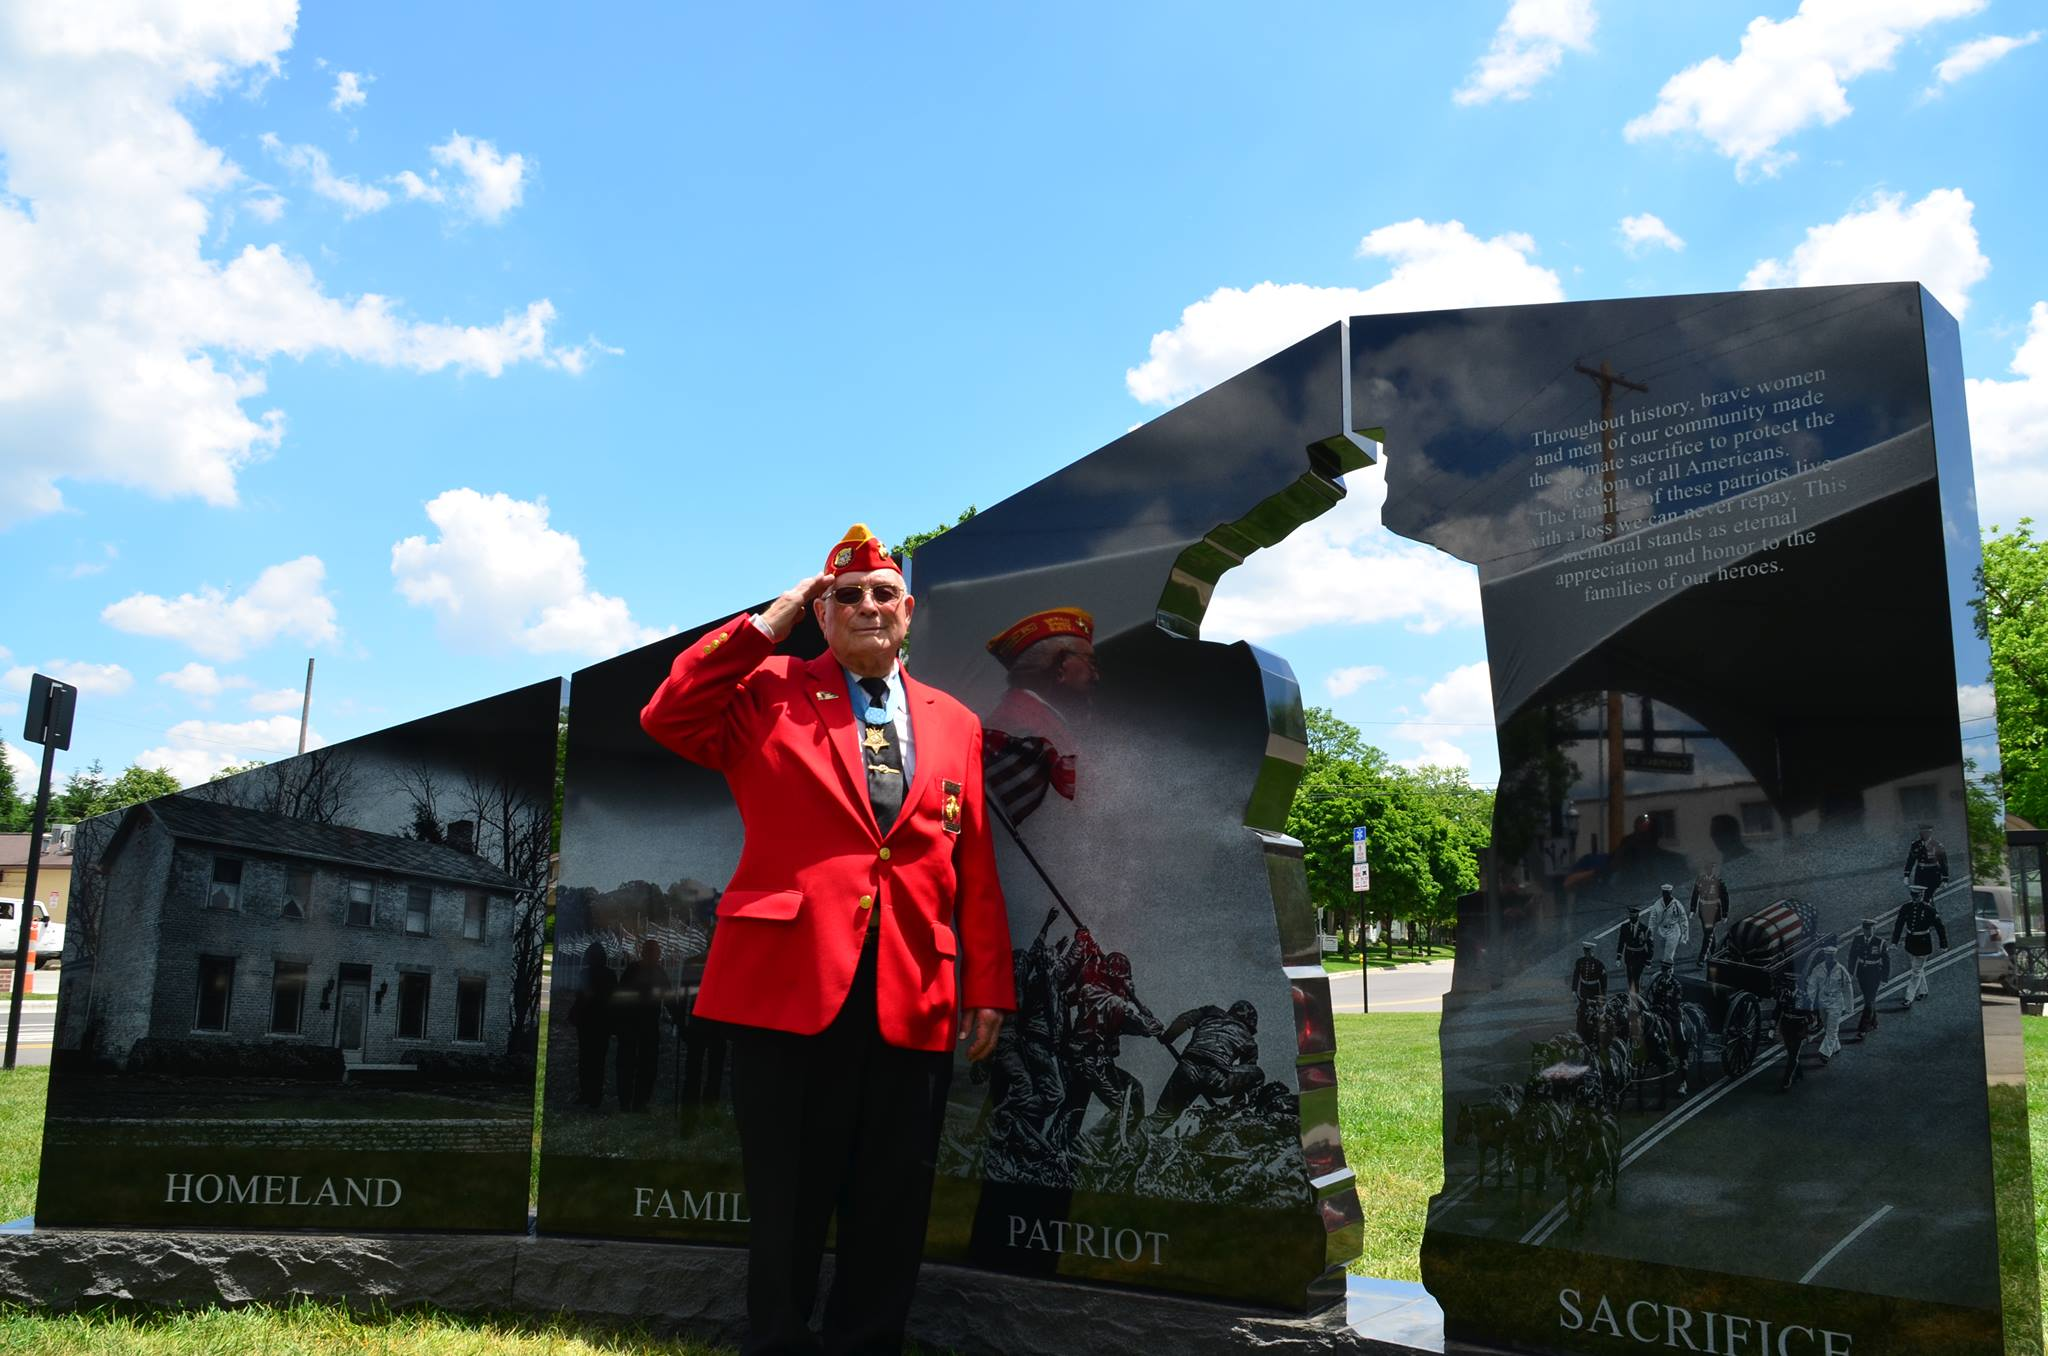 The Memorial on dedication day with Woody Williams